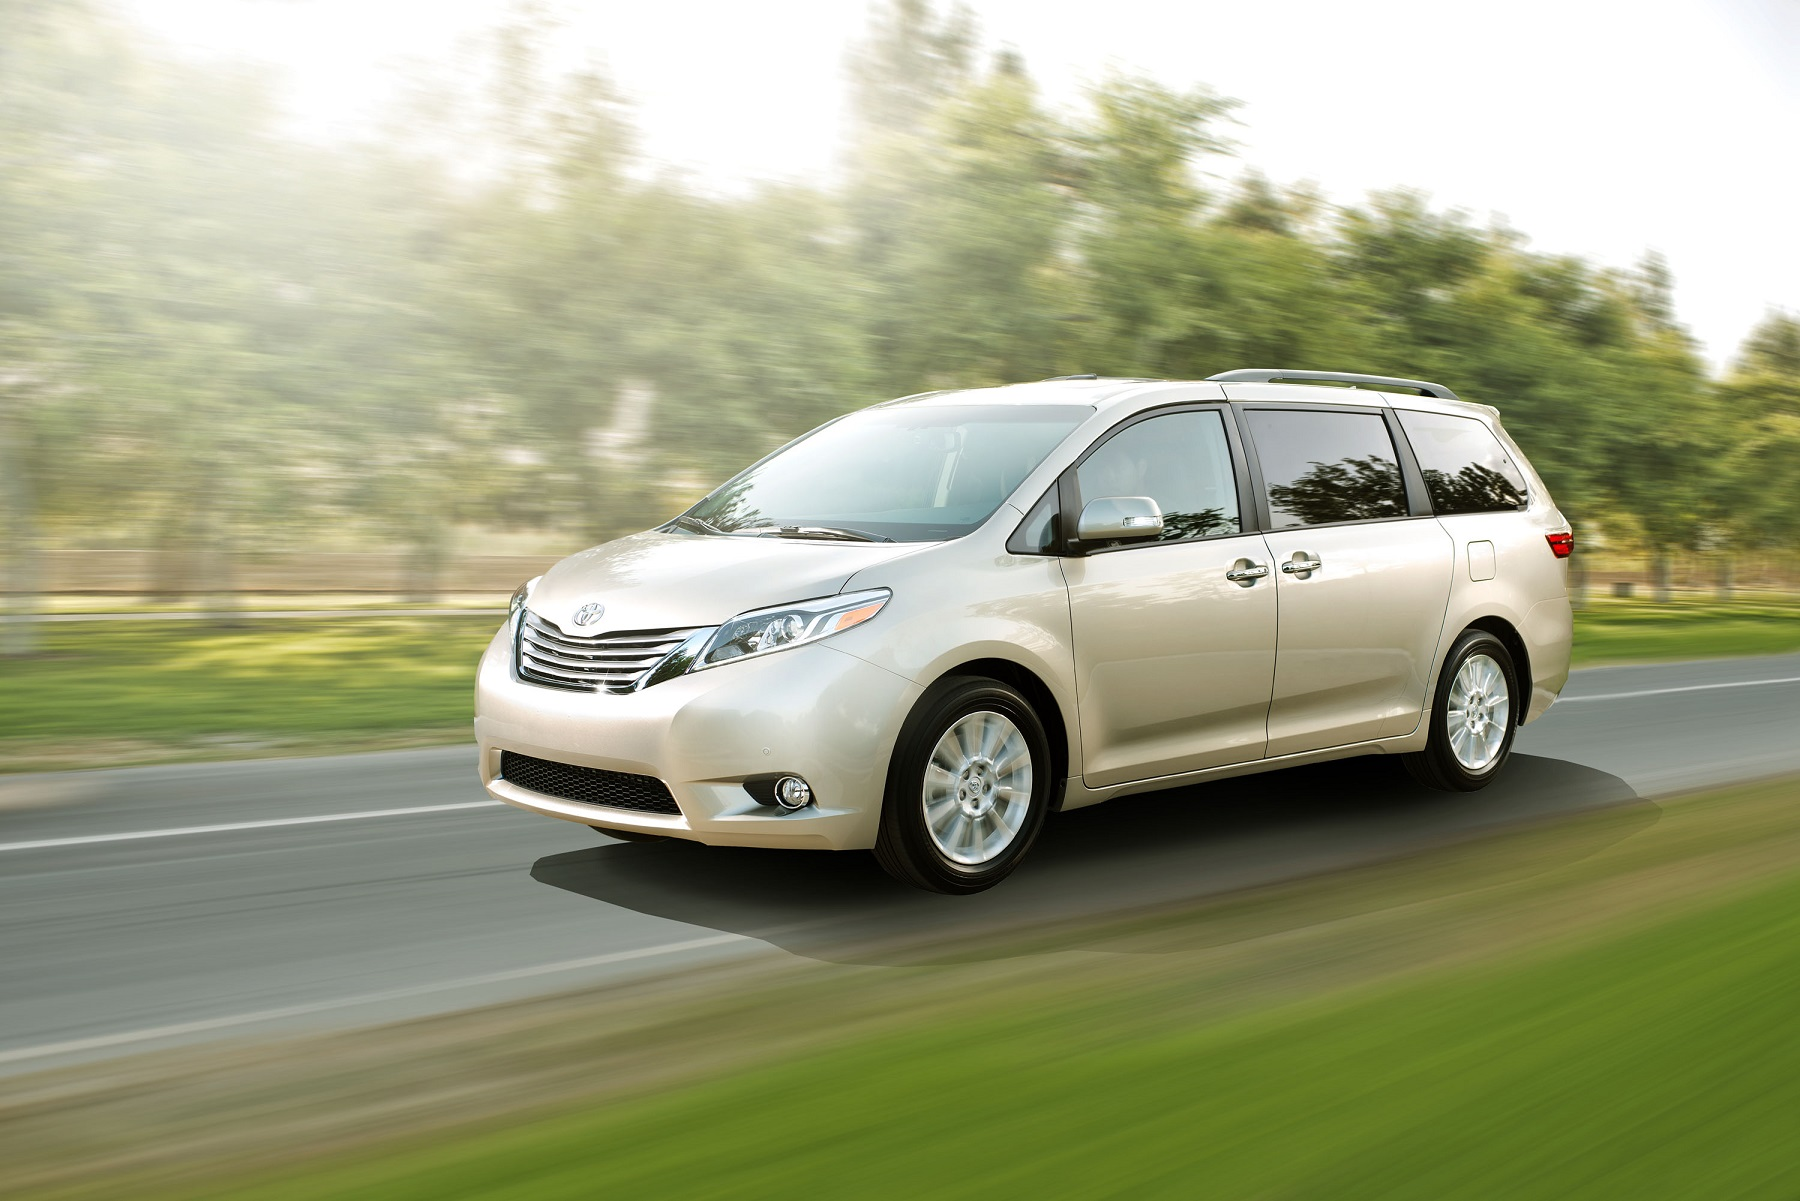 Manufacturer photo: The 2015 Toyota Sienna minivan debuts refreshed exterior styling packed with added safety, convenience and multi-media features